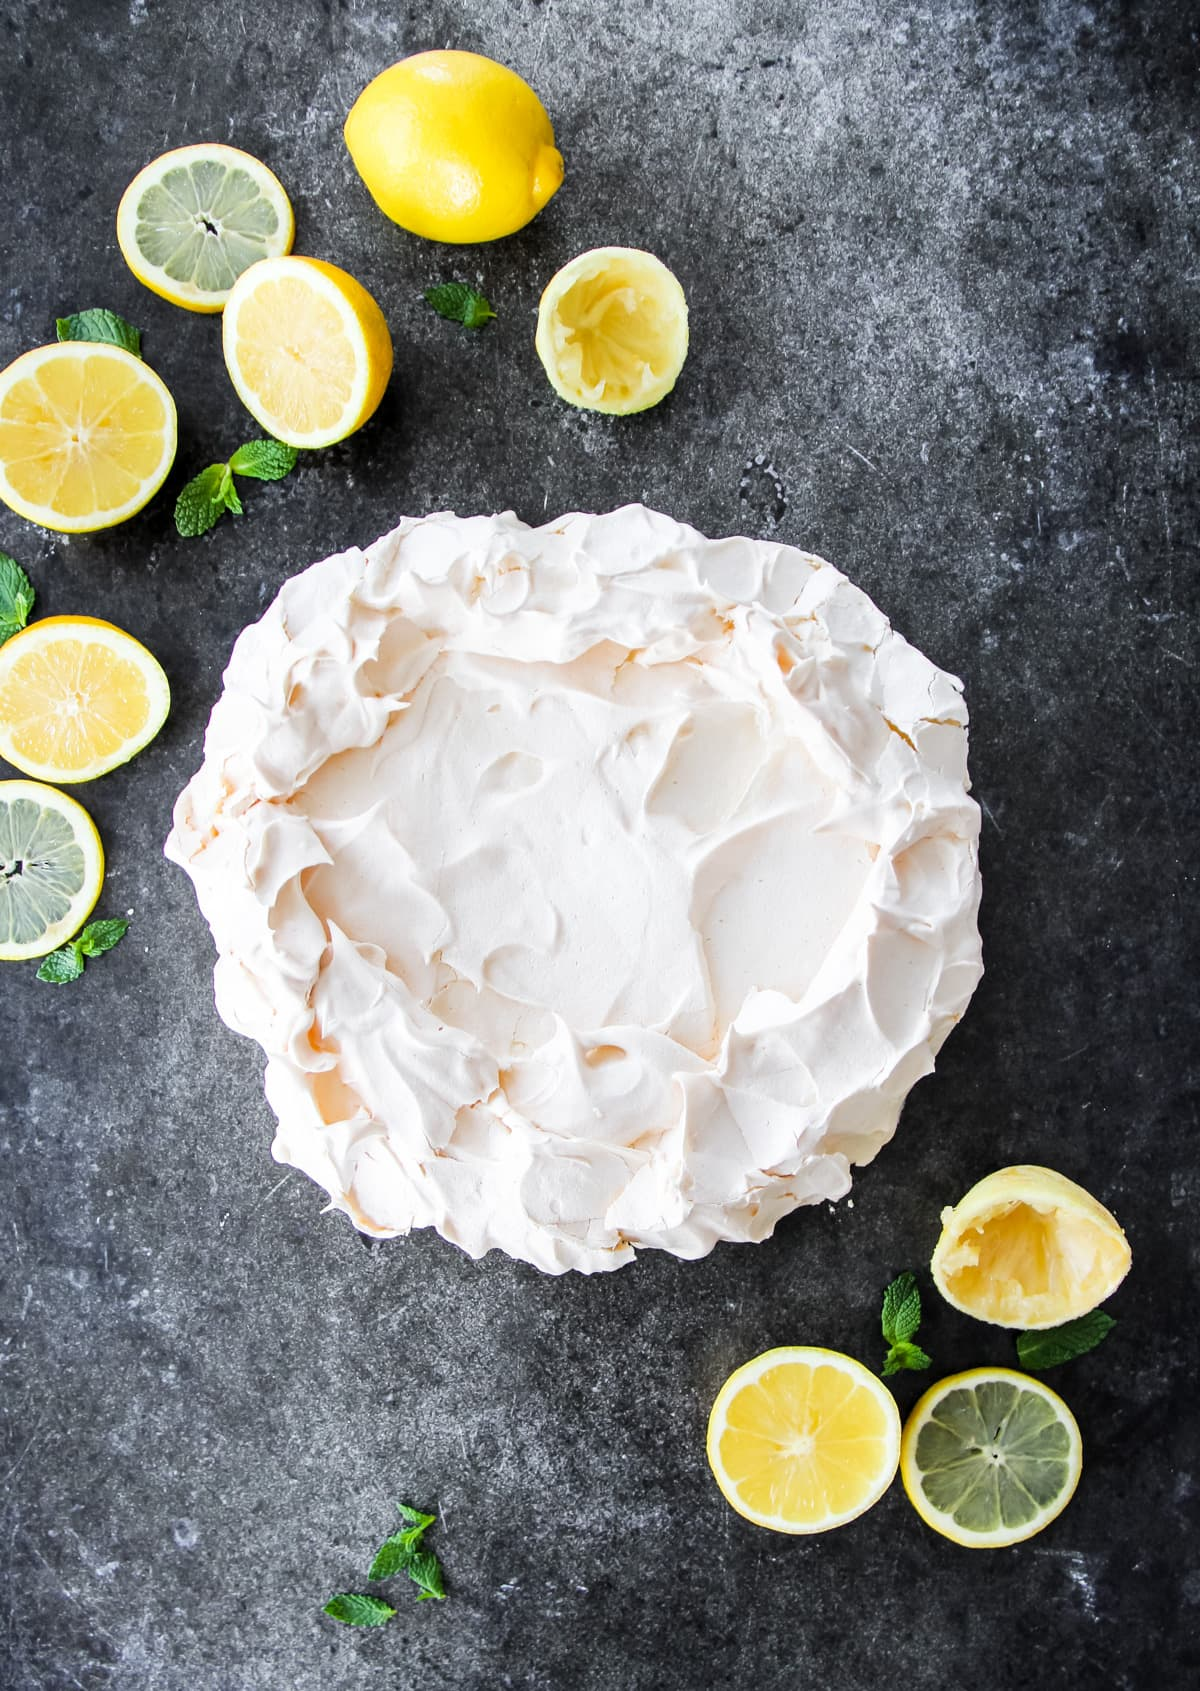 a top down view of a pavlova meringue. in the background are sliced lemons and sprigs of mint